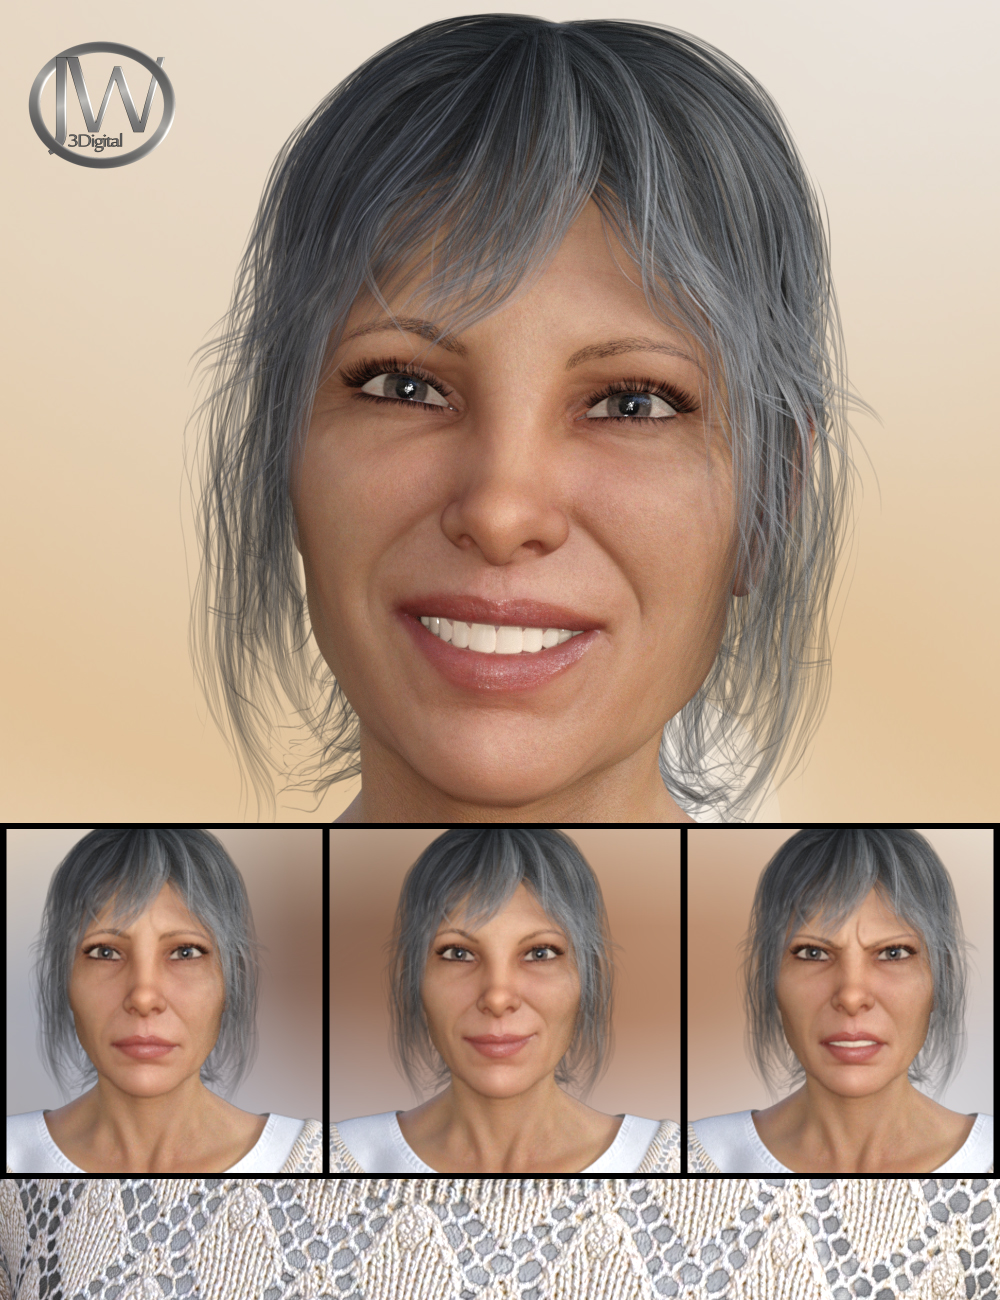 A Lady - Expressions for Genesis 8 Female(s) and Alexandra 8 by: JWolf, 3D Models by Daz 3D